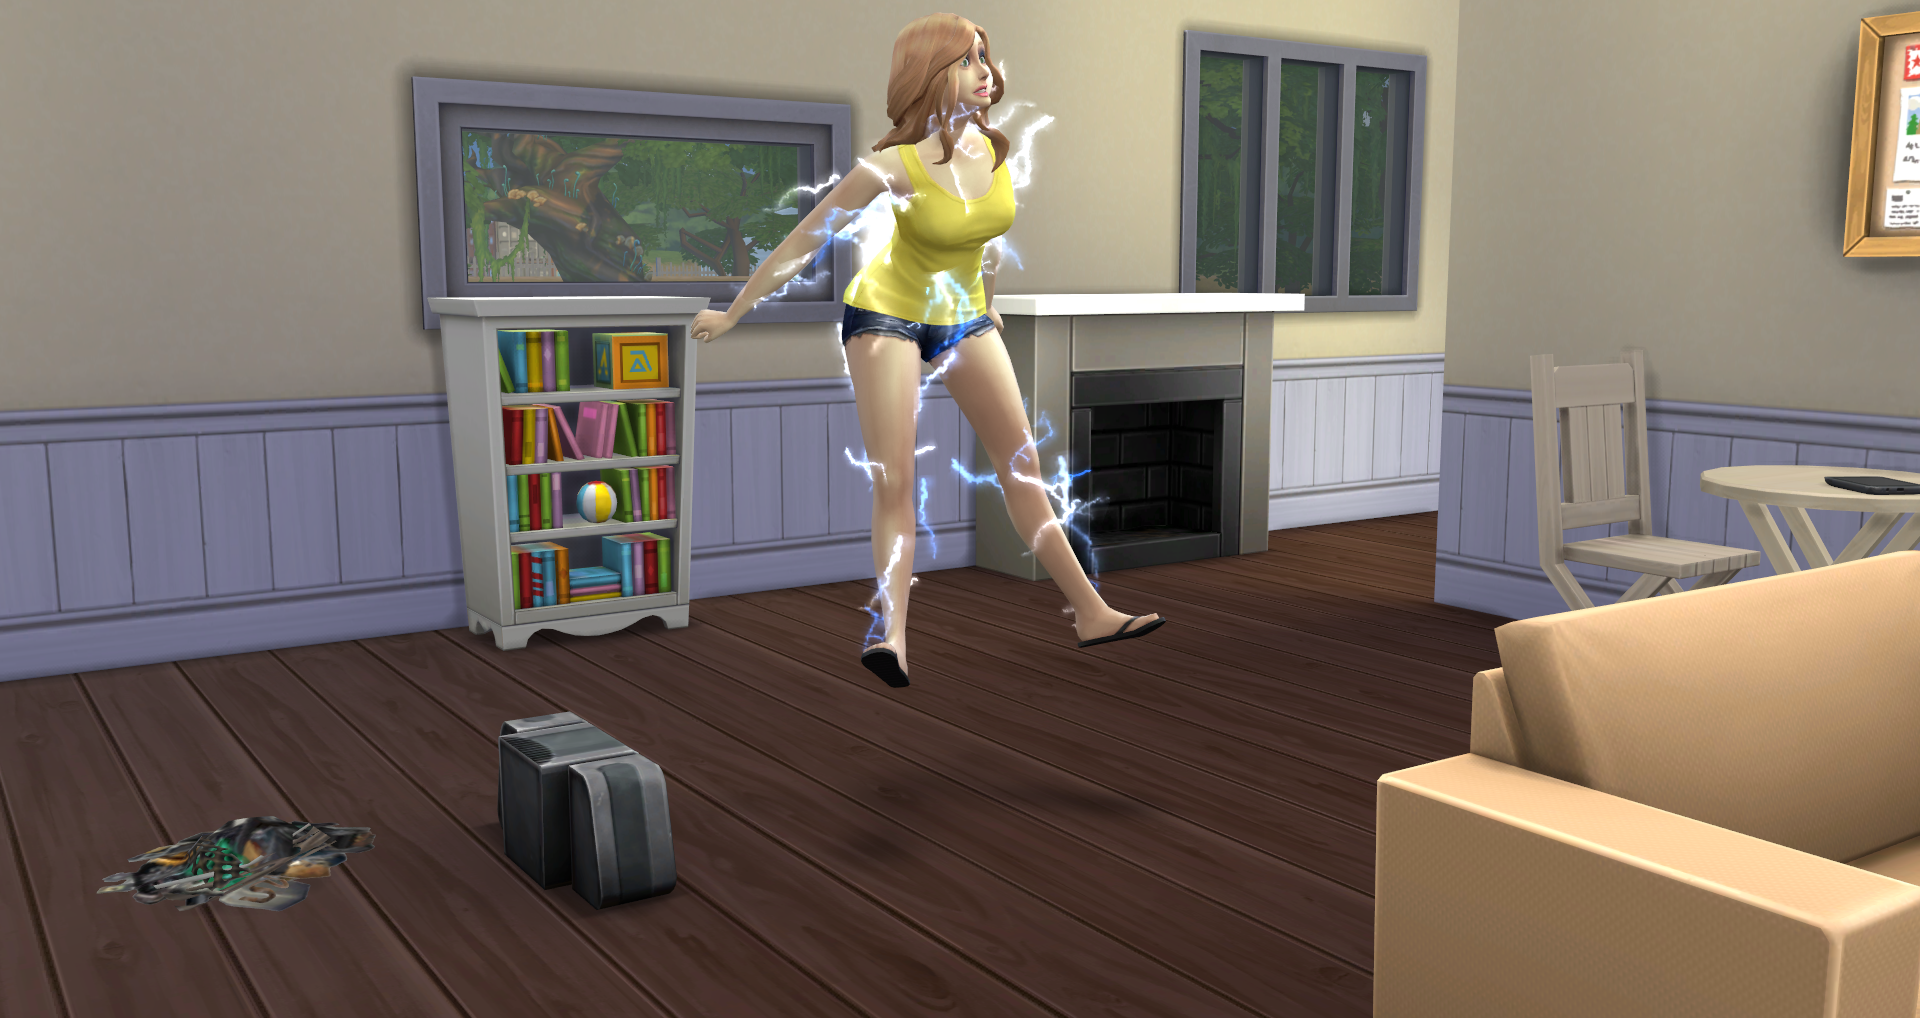 How To Kill In The Sims 4